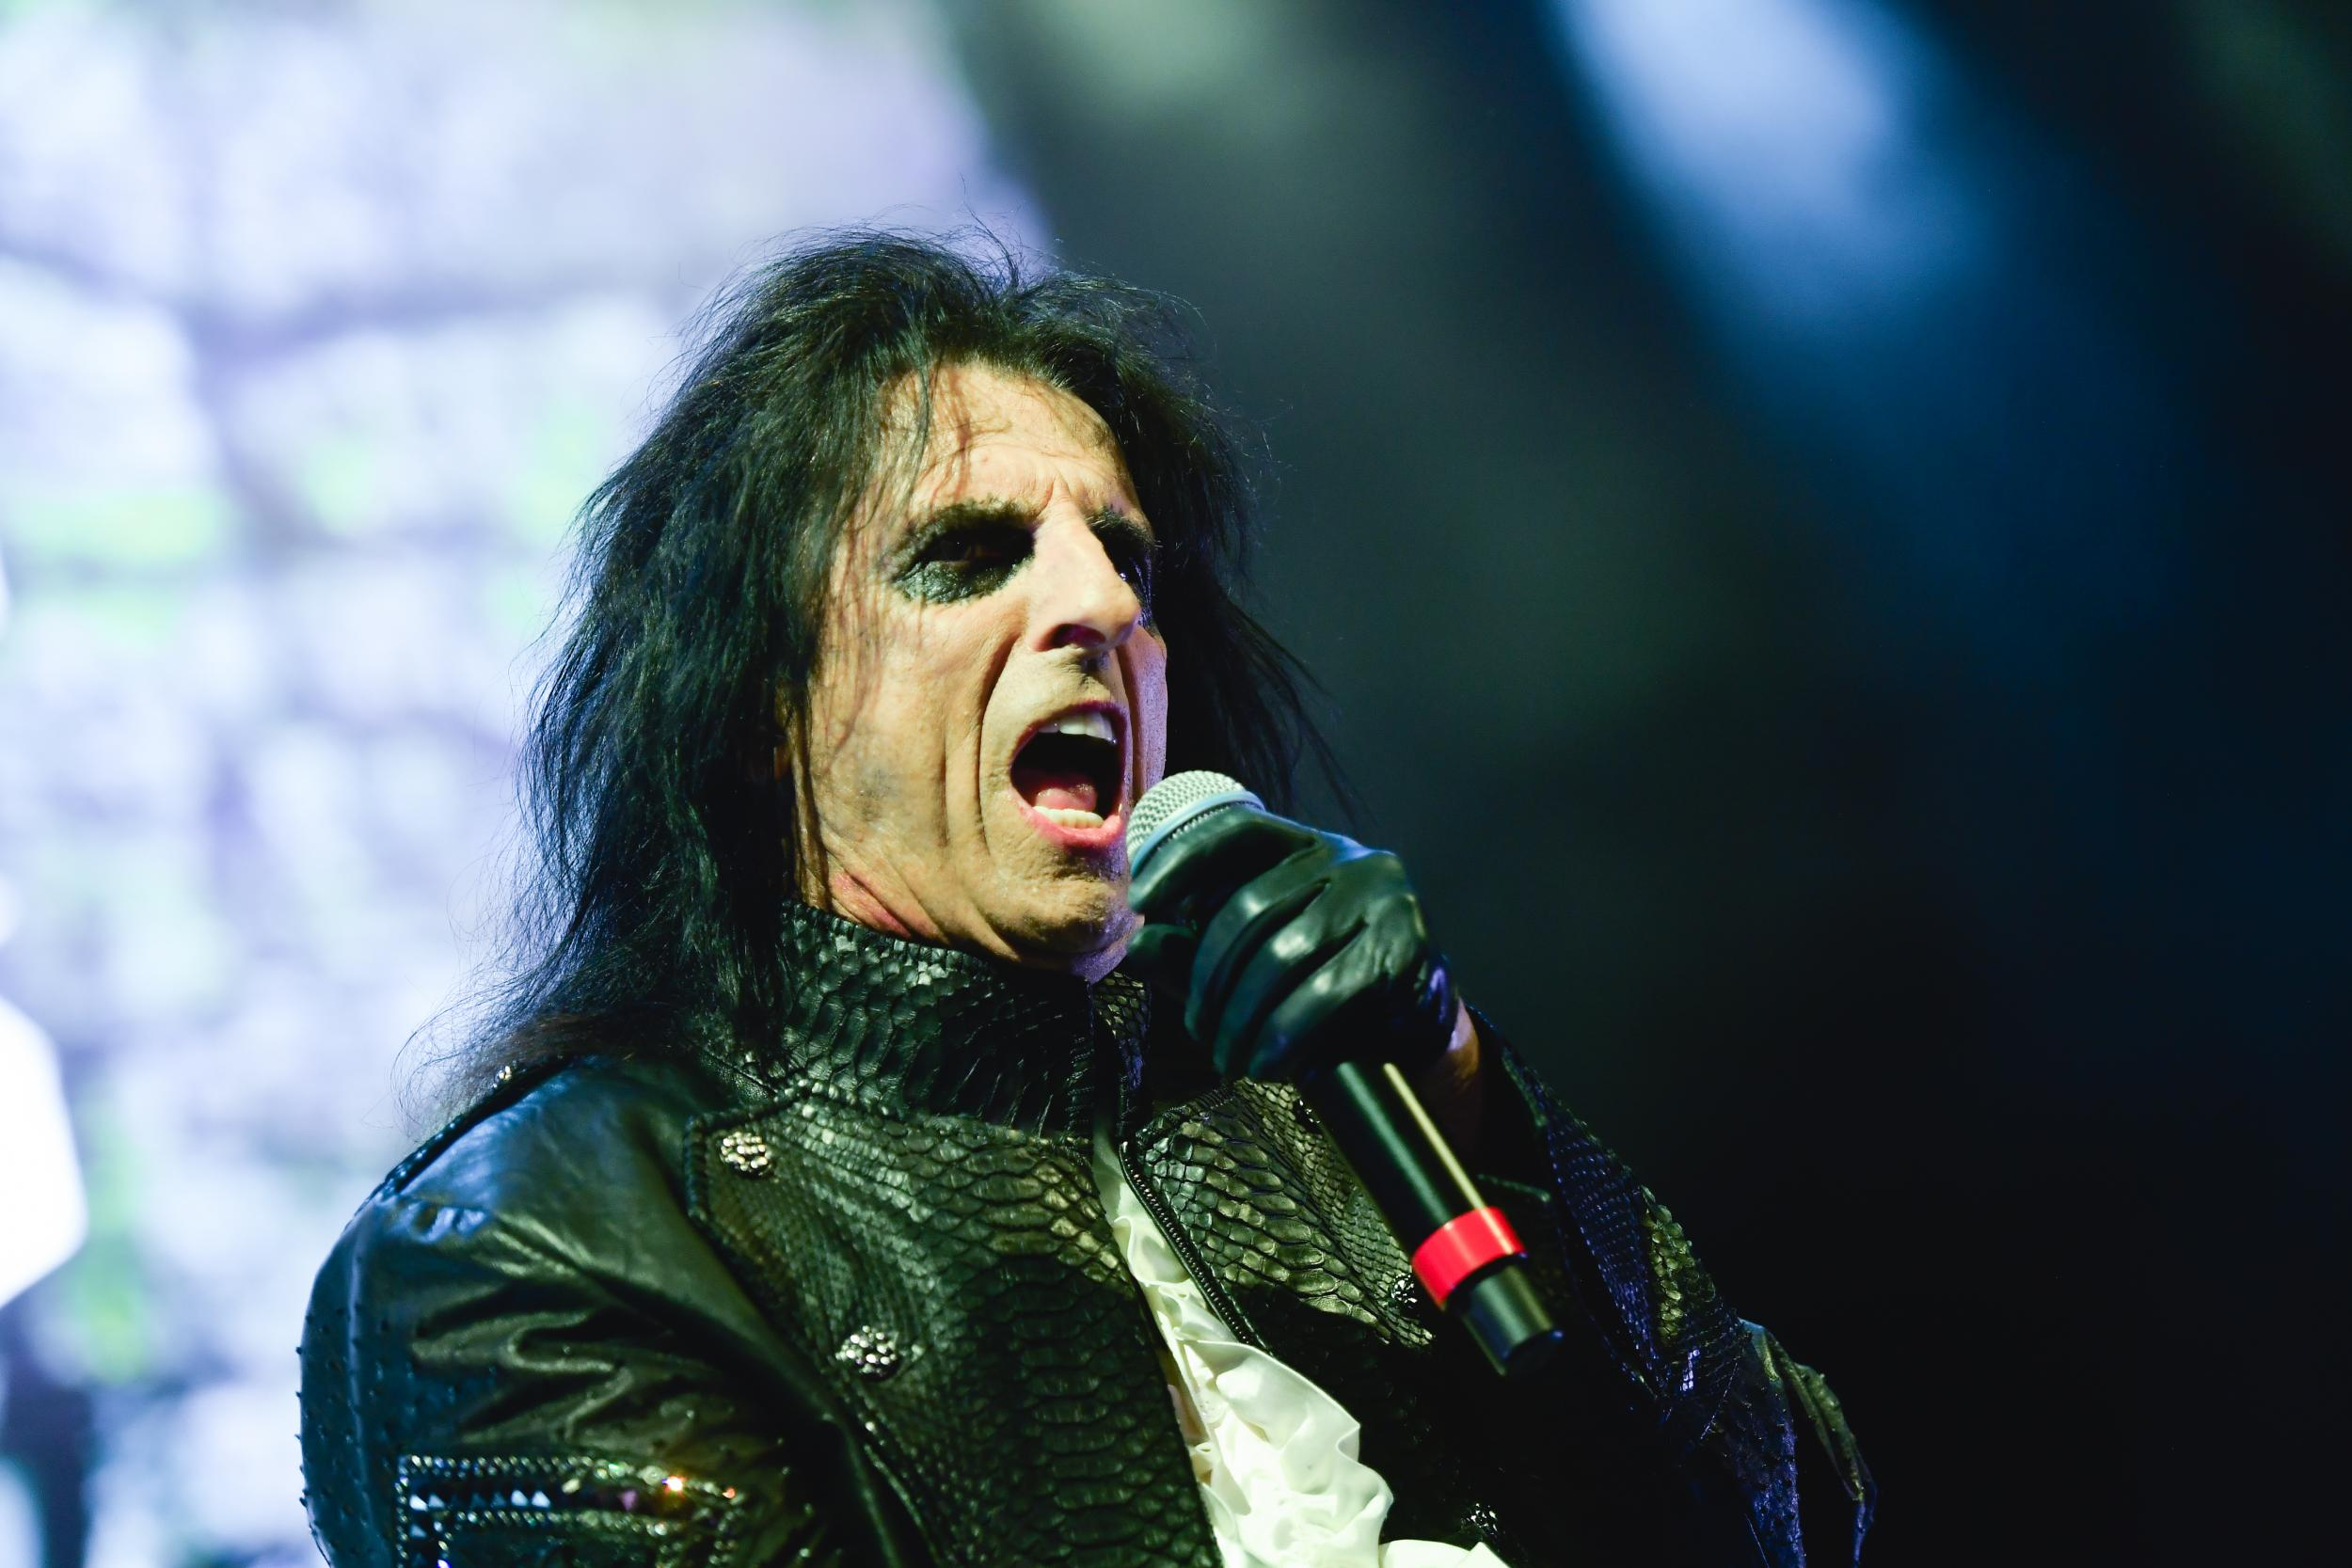 Alice Cooper suggests he will kill himself if his wife dies first af…